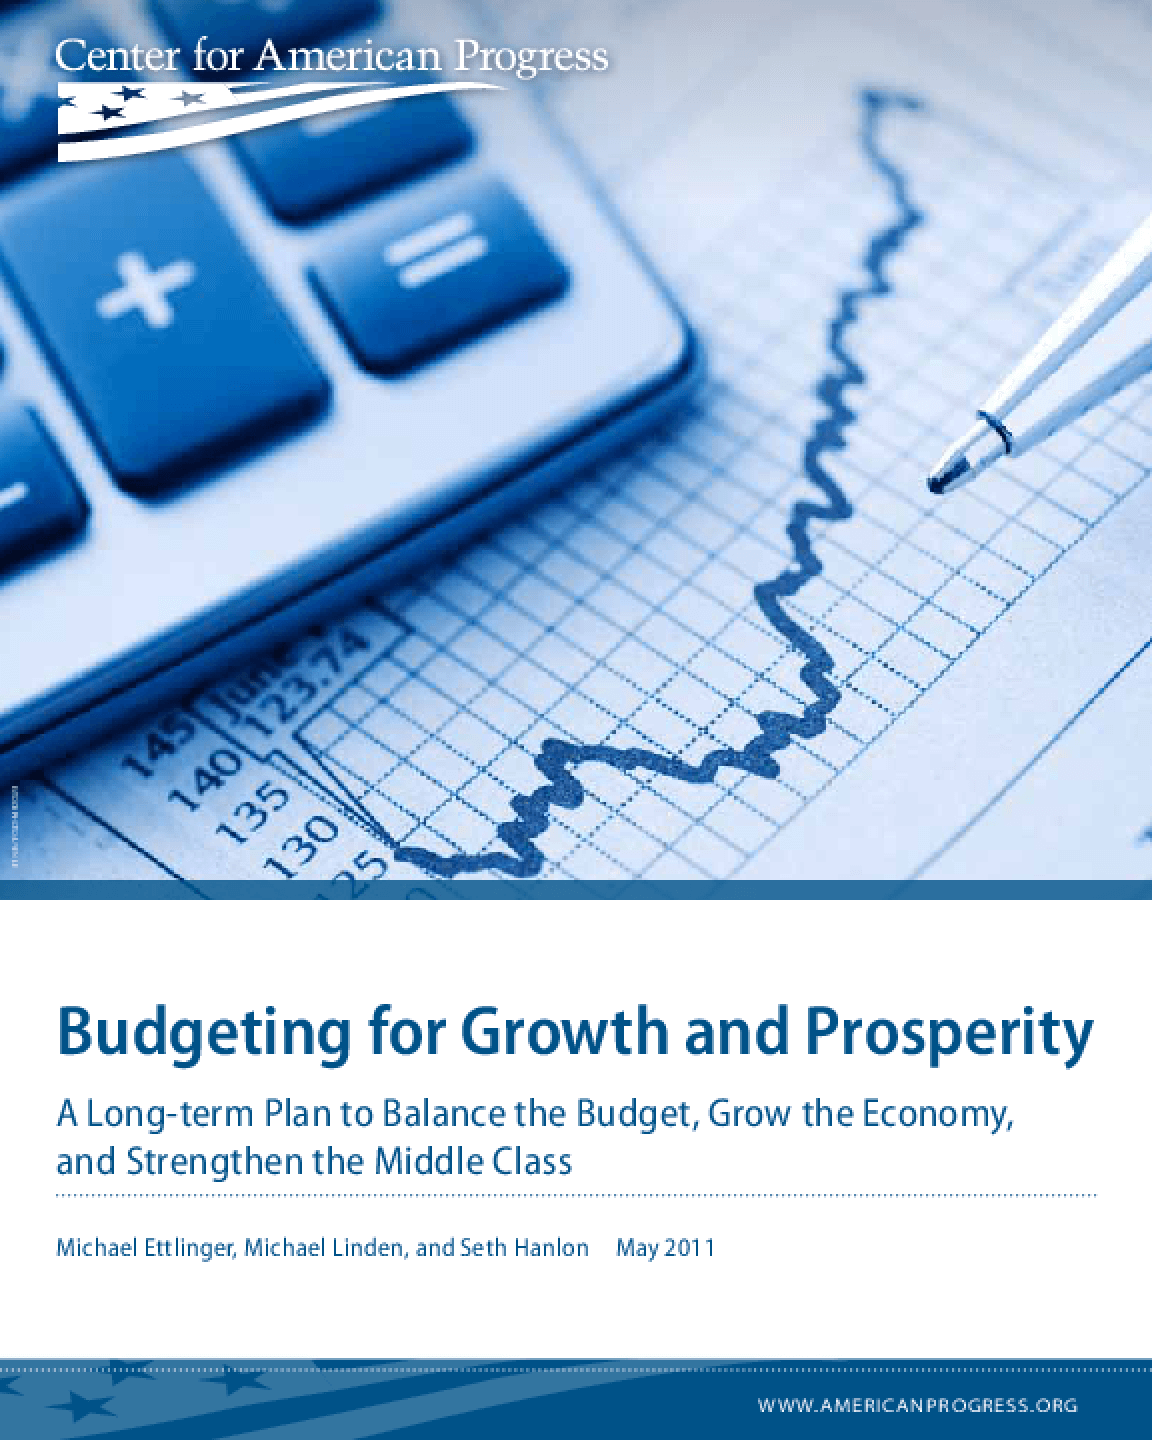 Budgeting for Growth and Prosperity: A Long-Term Plan to Balance the Budget, Grow the Economy, and Strengthen the Middle Class